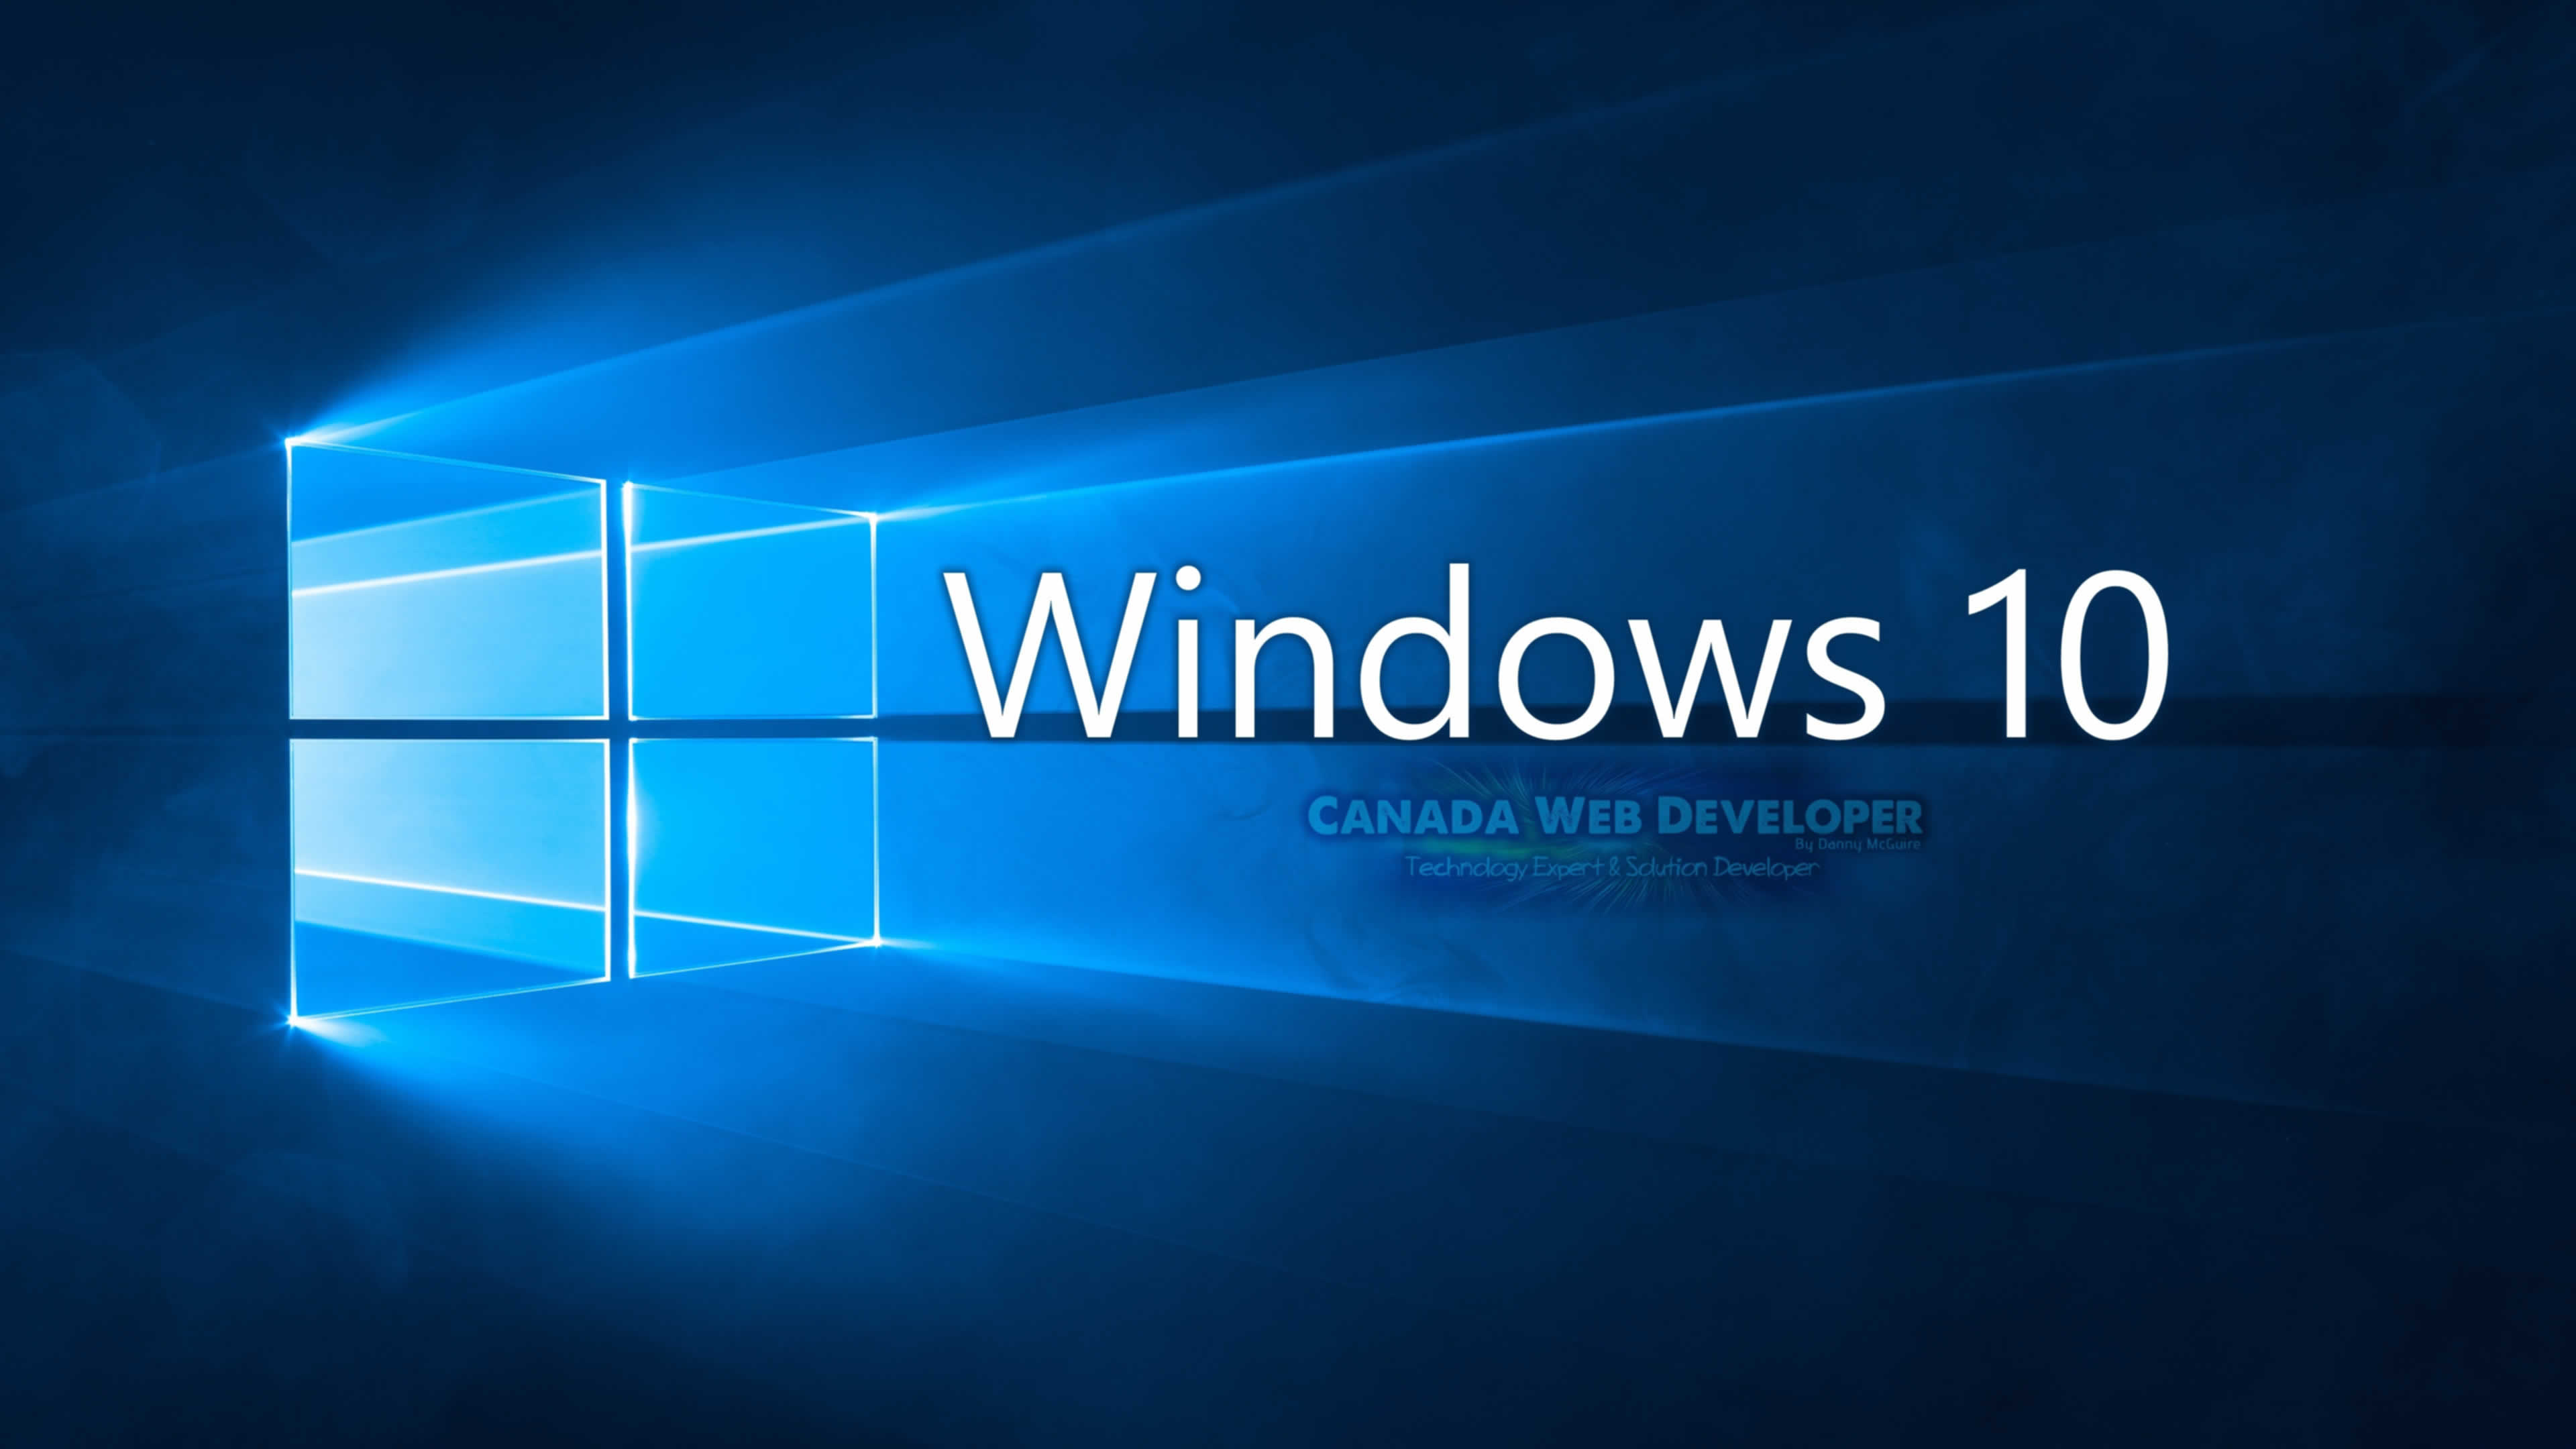 Microsoft windows 10 logo wallpaper wallpapersafari for Microsoft windows